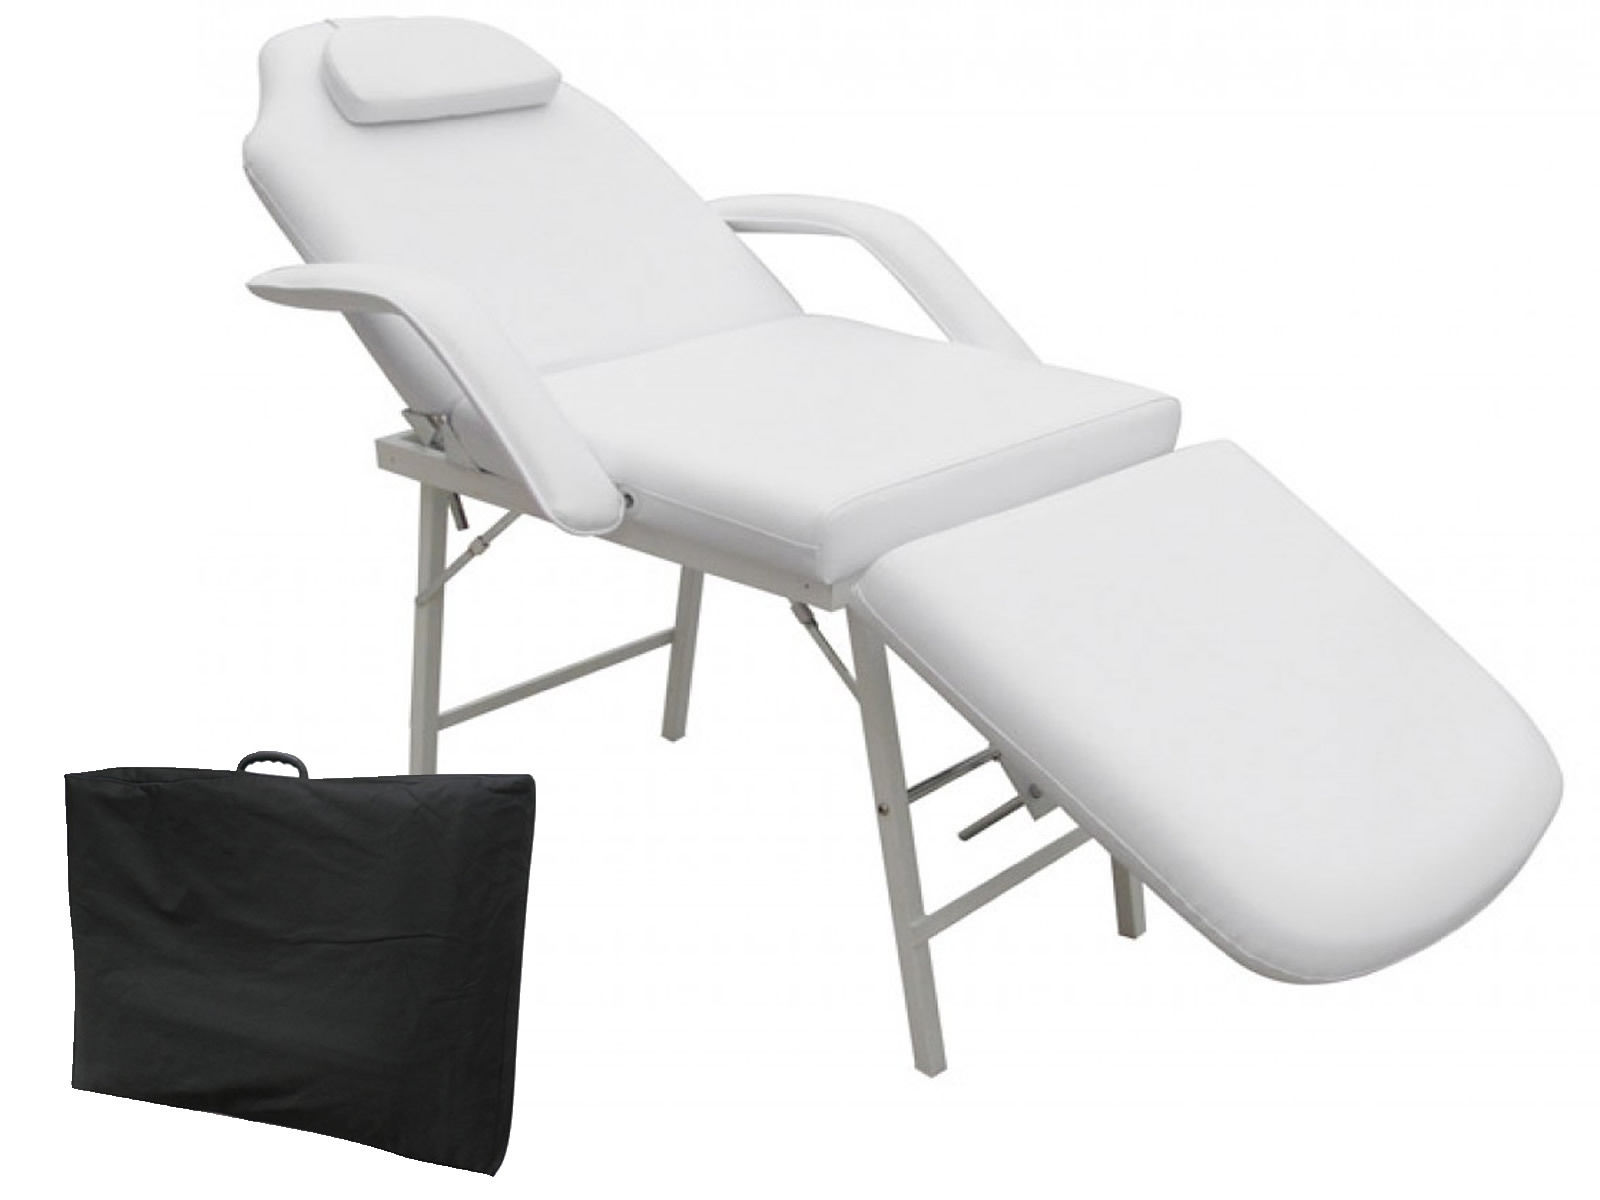 Costway 73'' Portable Tattoo Parlor Spa Salon Facial Bed Beauty Massage Table Chair